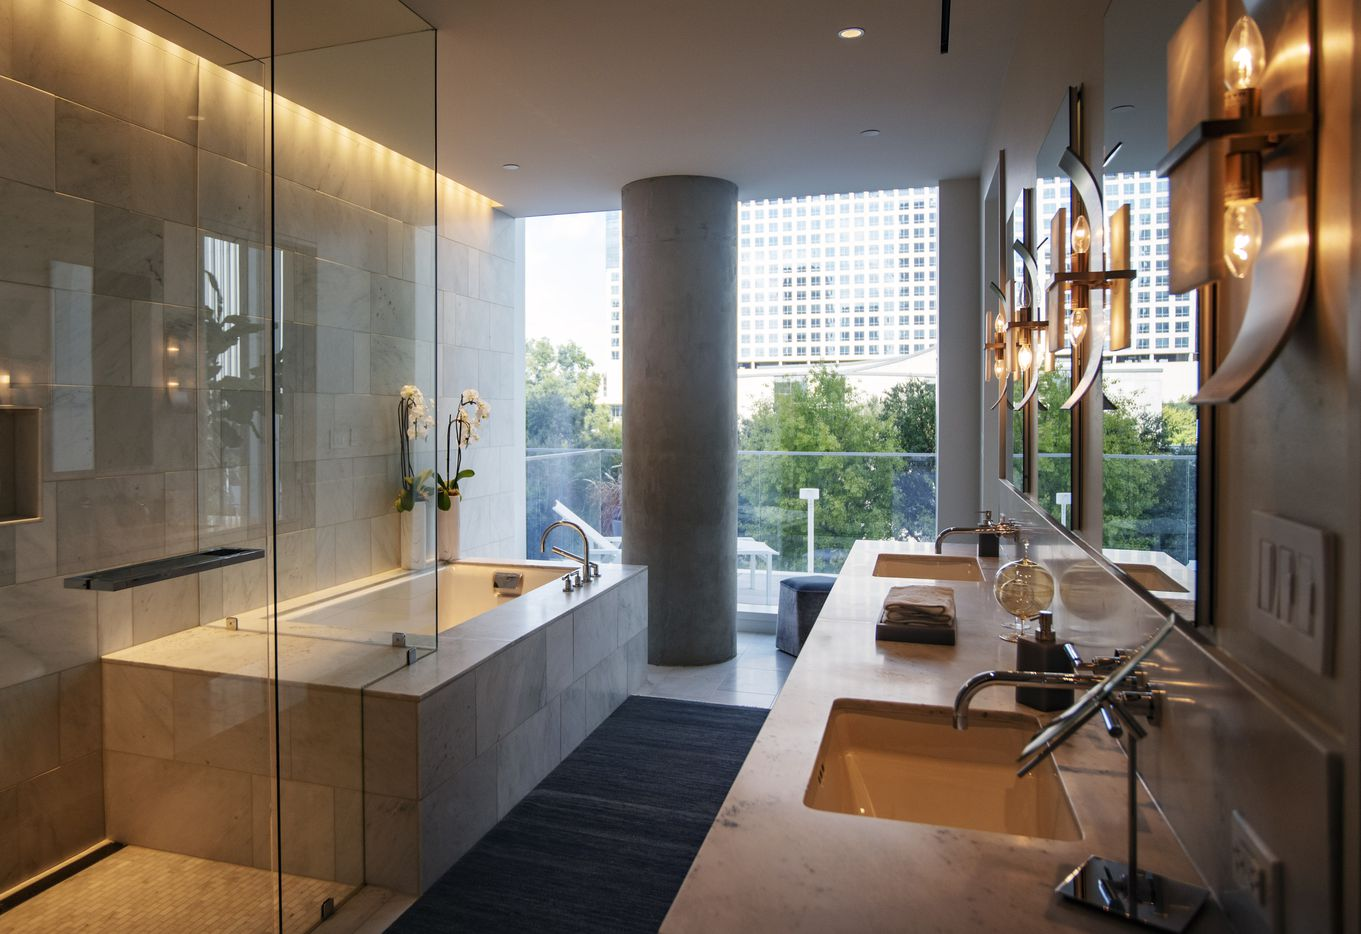 A master bathroom inside a model home at the Hall Arts Residences.